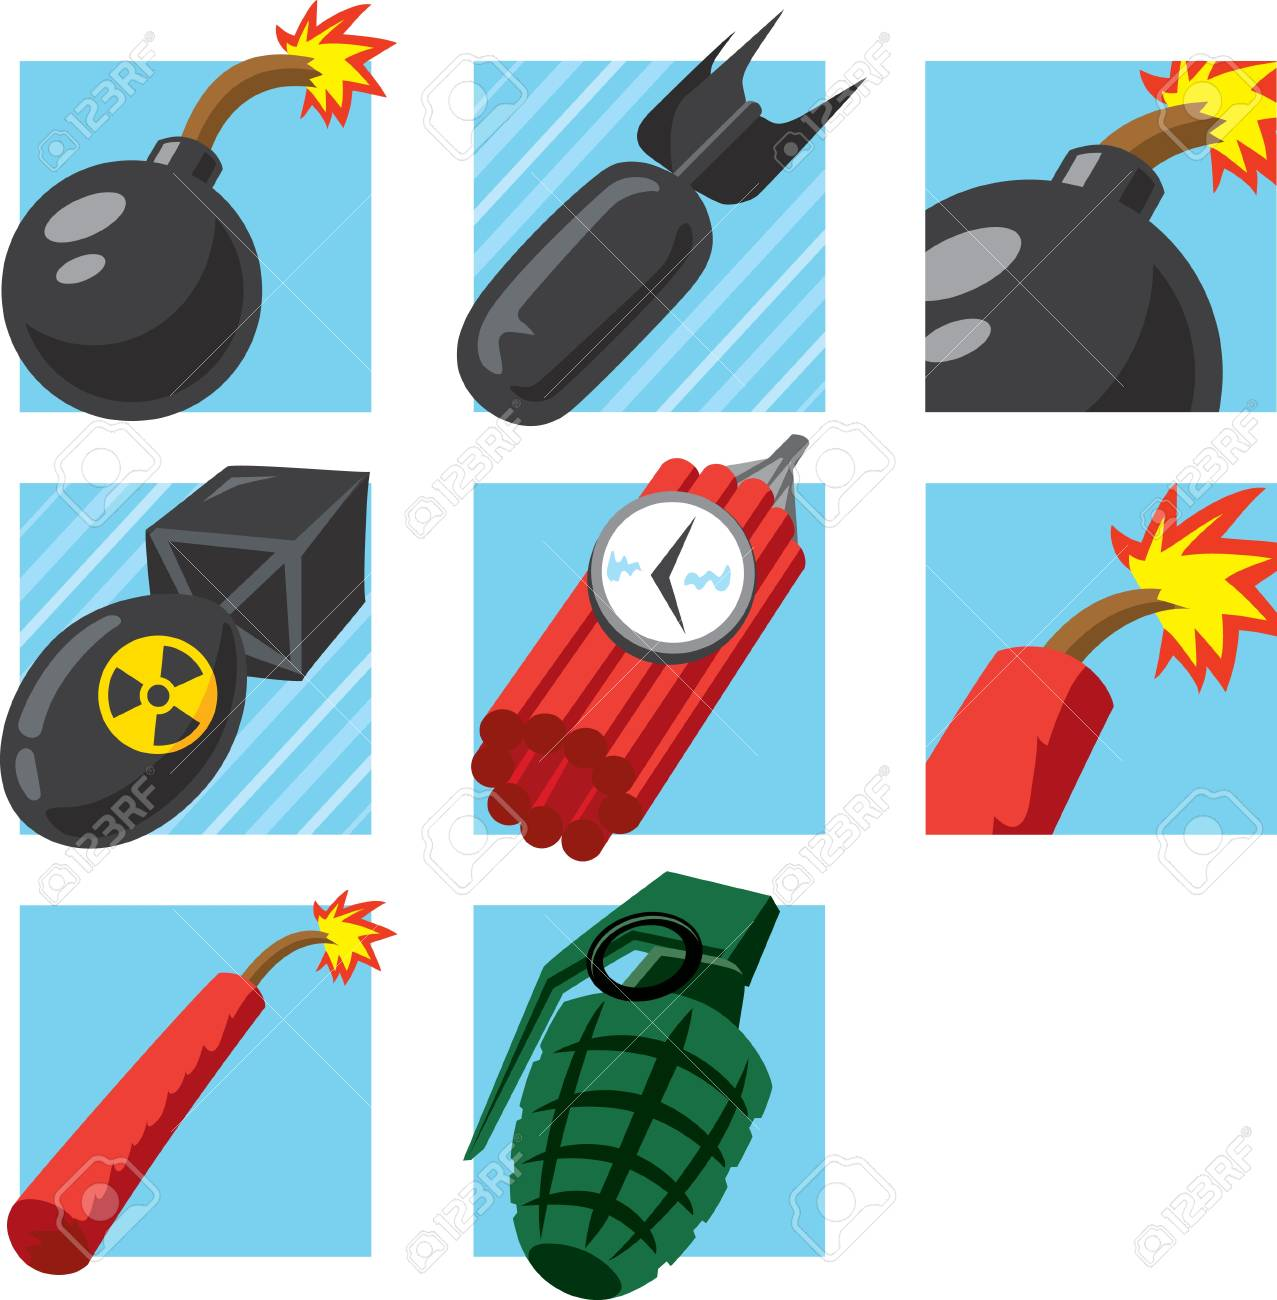 Bomb Icons Stock Vector - 16822625